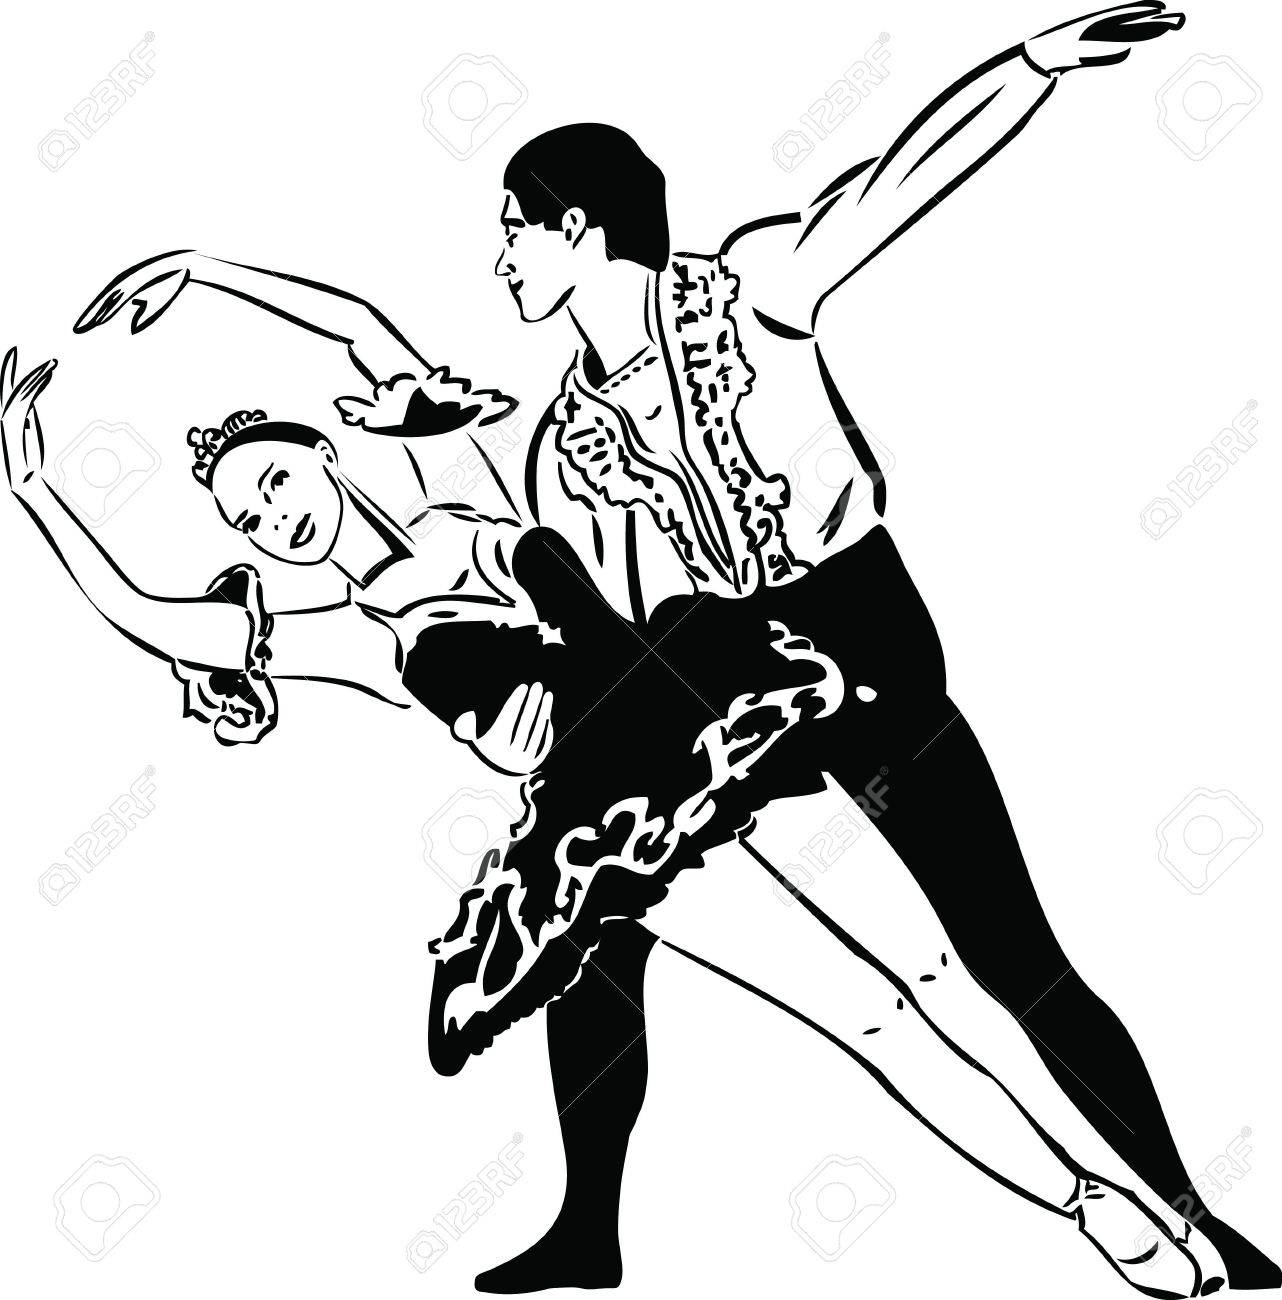 black and white sketch ballet dancing couples Stock Vector - 10873785